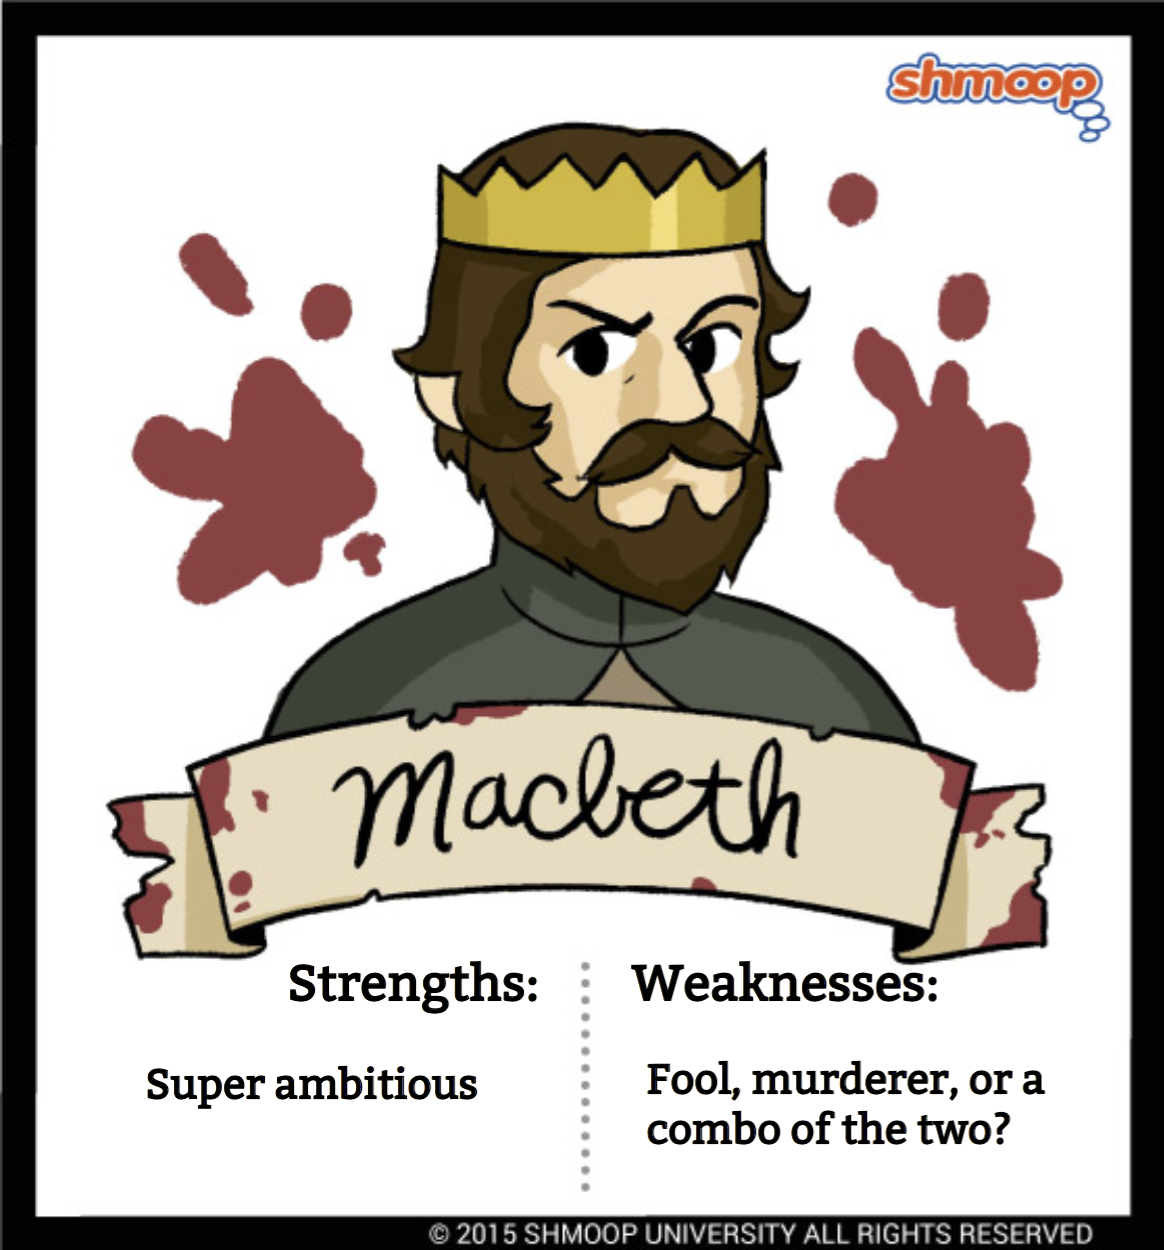 malcolm vs macduff essay Macbeth v macduff lyrics: what up, it's your boy here, fleance or crew with your boy malcolm and try to scare up some bravery or do your best to battle me.